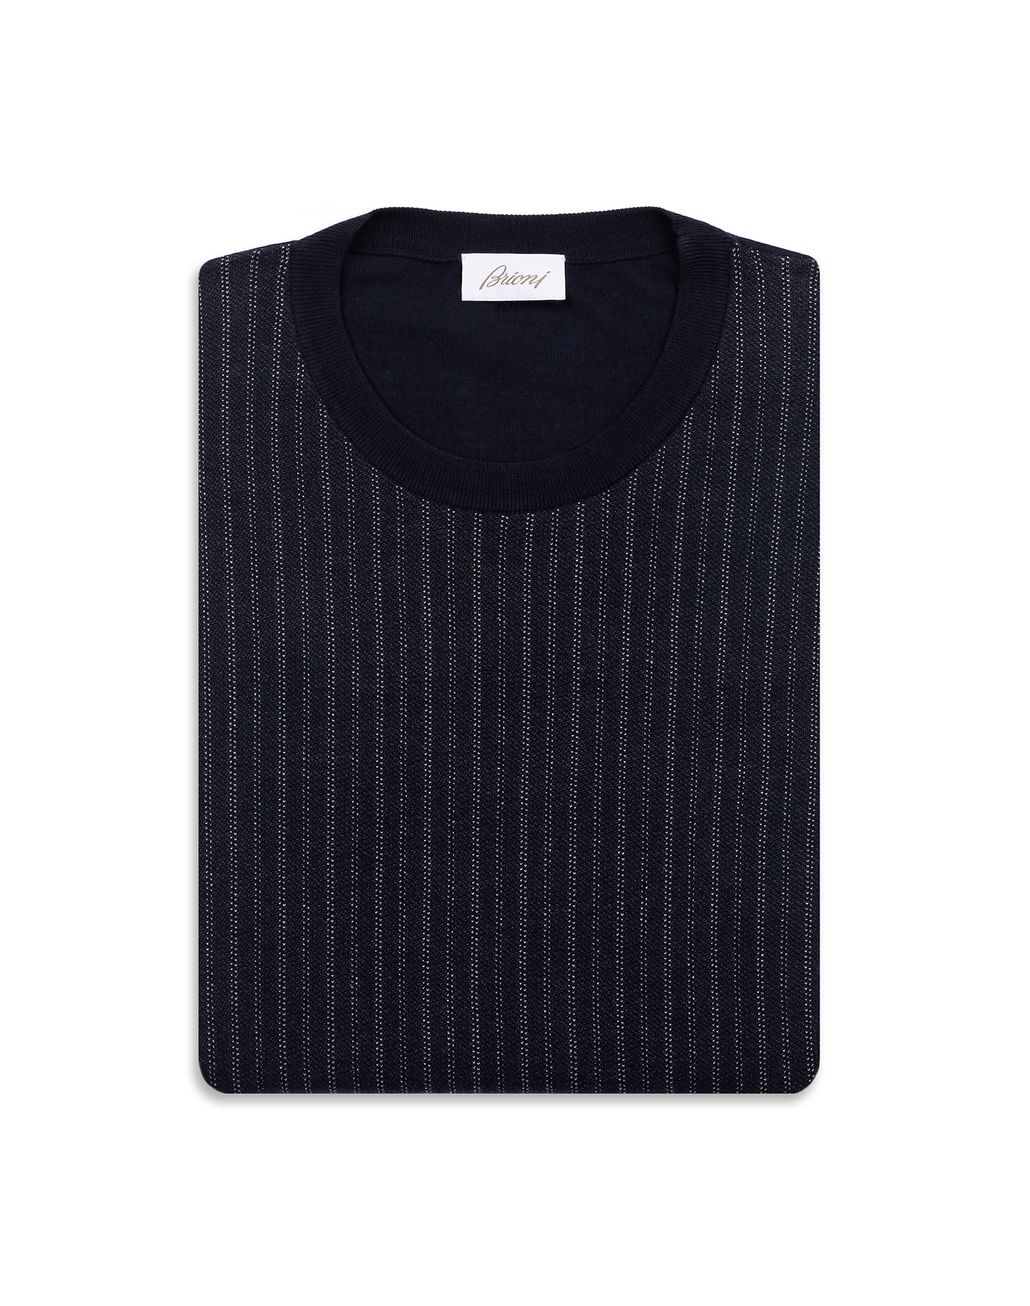 BRIONI Navy Blue Crew Neck Sweater Knitwear [*** pickupInStoreShippingNotGuaranteed_info ***] e